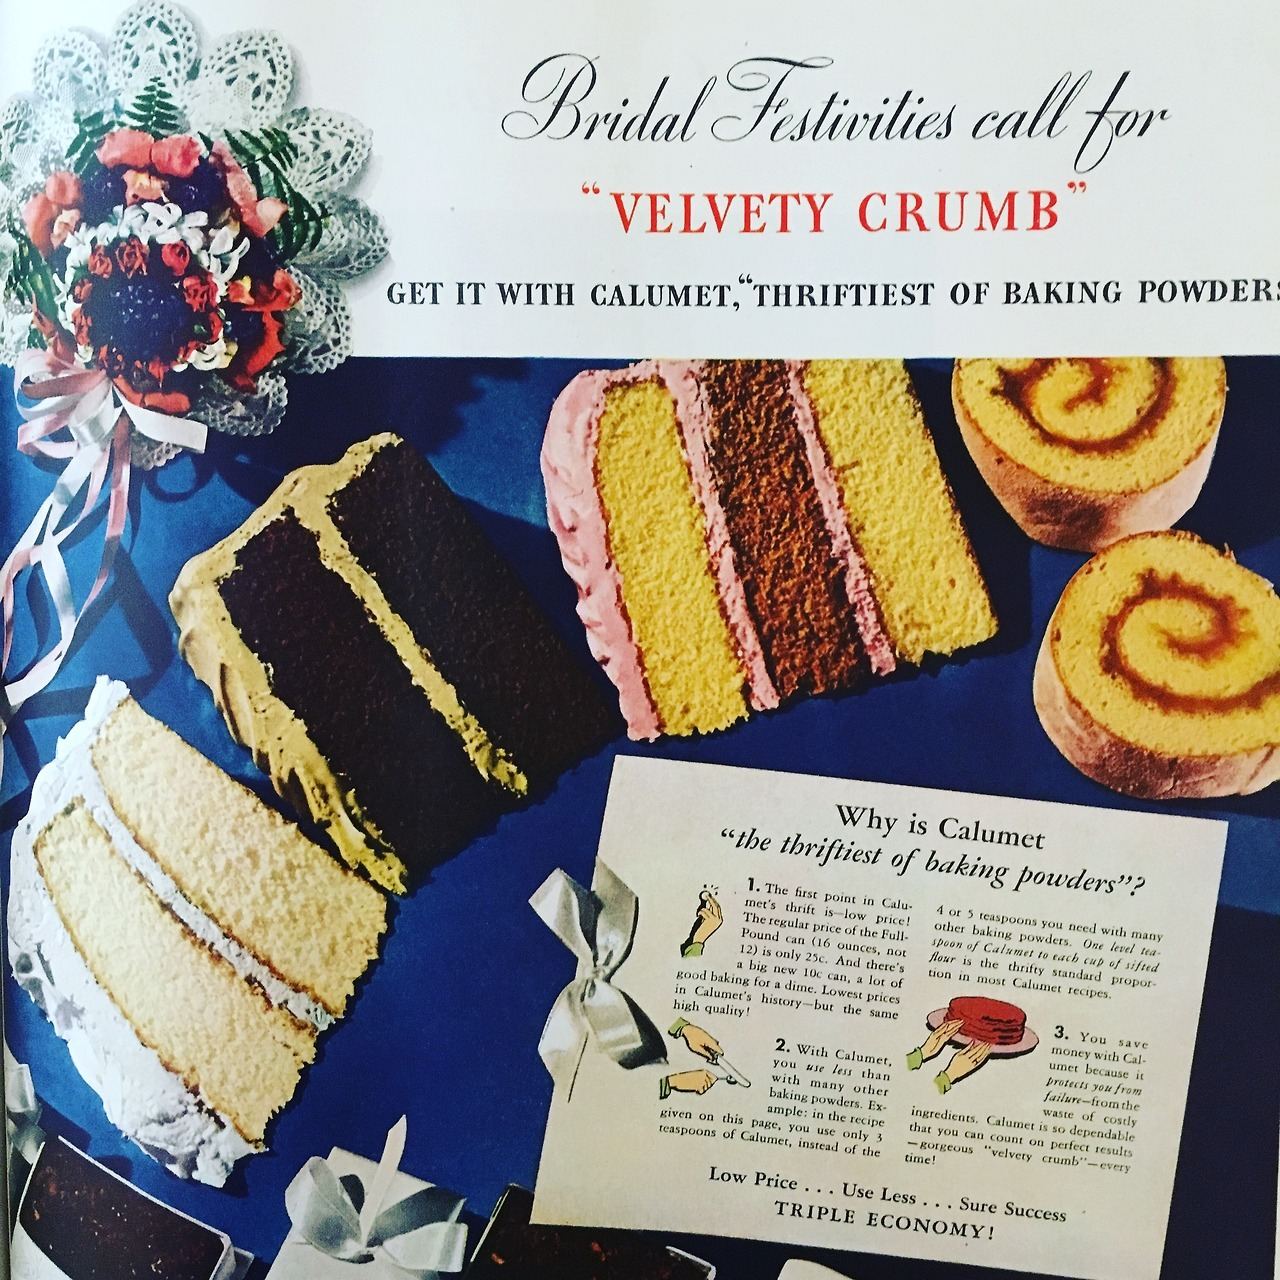 """""""Bridal Festivities call for """"Velvety Crumb"""" - get it with Calumet, thriftiest of baking powders.""""  Have a slice!  Calumet Baking Powder. Ladies' Home Journal. July 1936."""